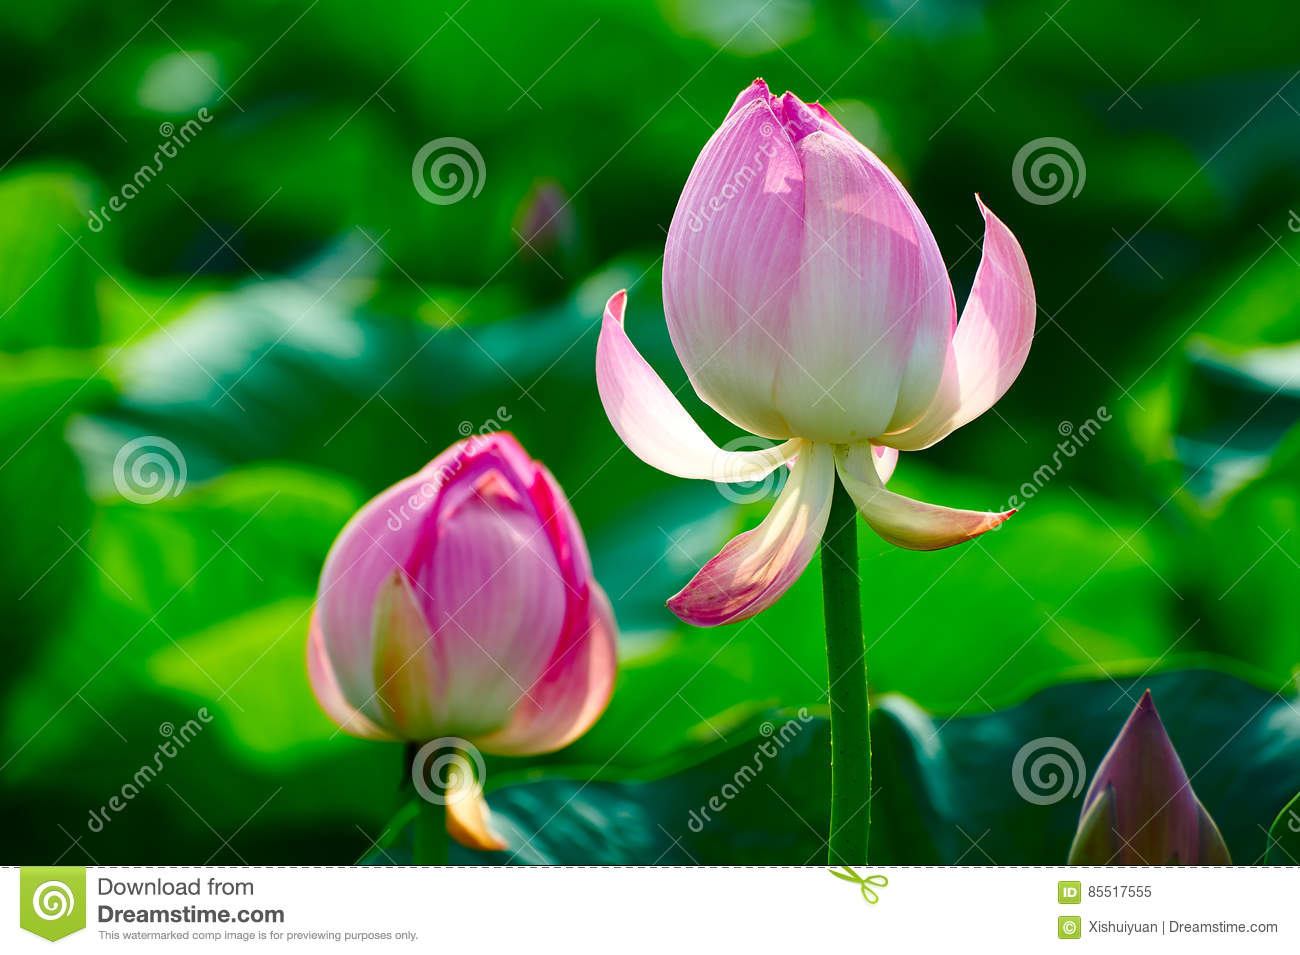 Two Lotus Flower Buds Stock Image Image Of Green Closeup 85517555